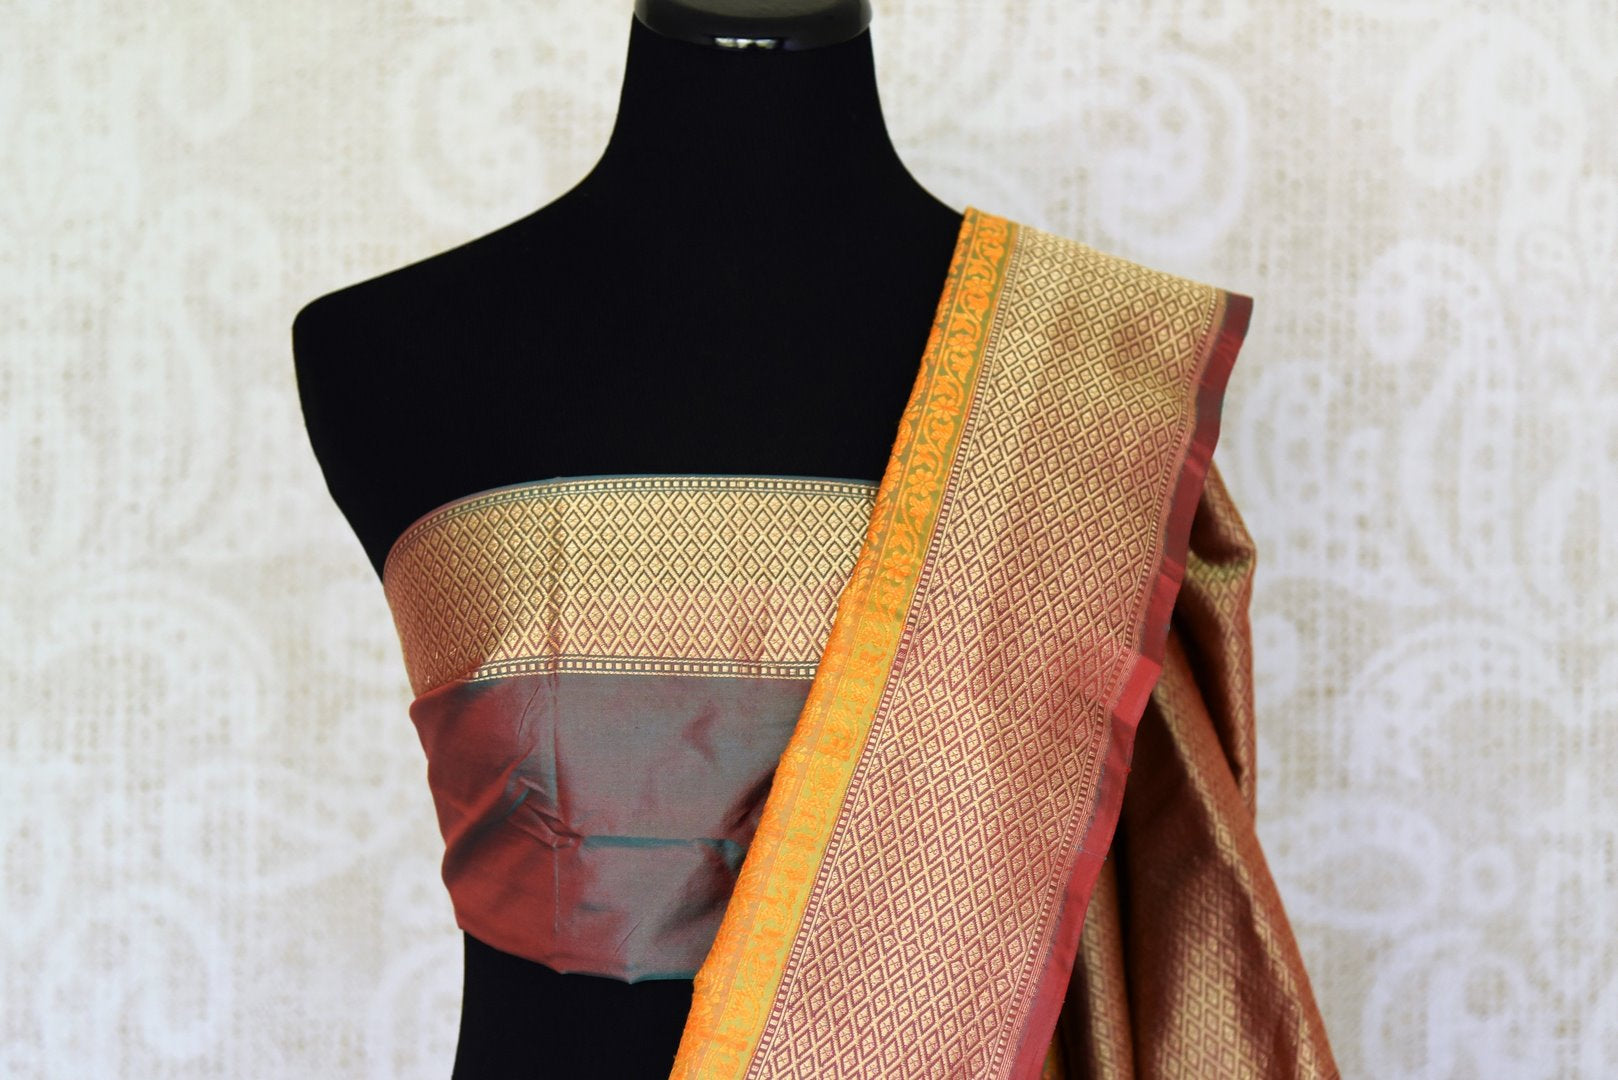 Green Benarasi saree shop online in USA with zari border and geometric pattern. Adorn your style with a range of exquisite handloom sarees from Pure Elegance Indian clothing store in USA. We have an exquisite range of Indian designer sarees, silk sarees, Banarasi sarees and many other varieties also available at our online store.-blouse pallu